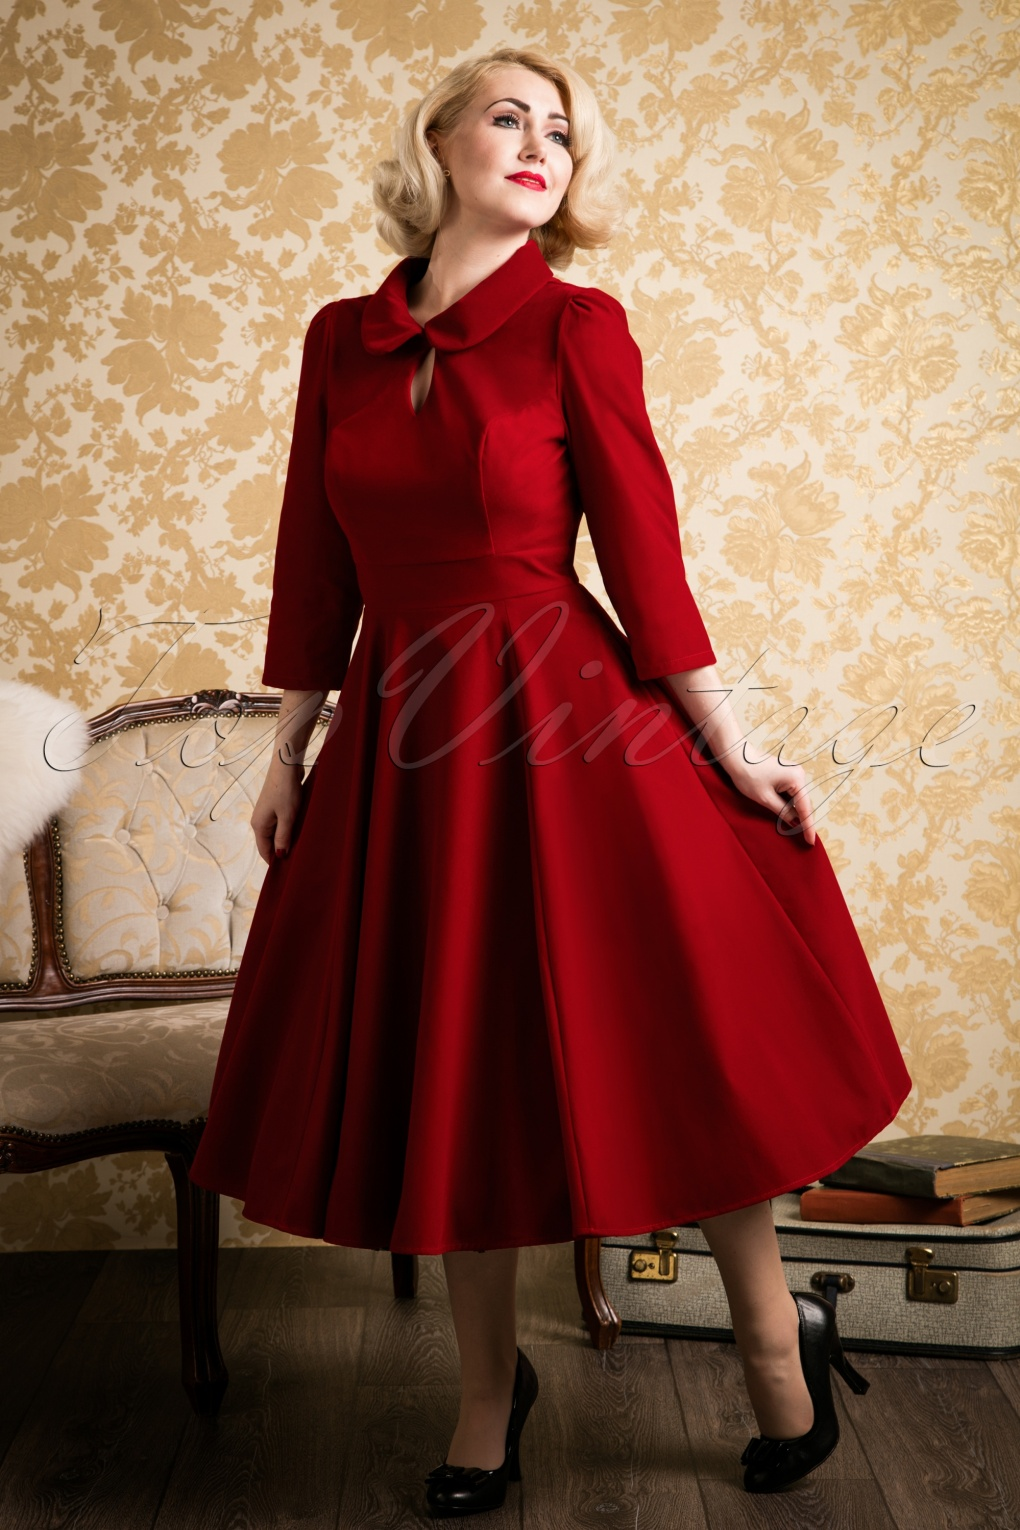 Vintage Inspired Cocktail Dresses, Party Dresses 50s Florence Velvet Swing Dress in Burgundy £49.58 AT vintagedancer.com